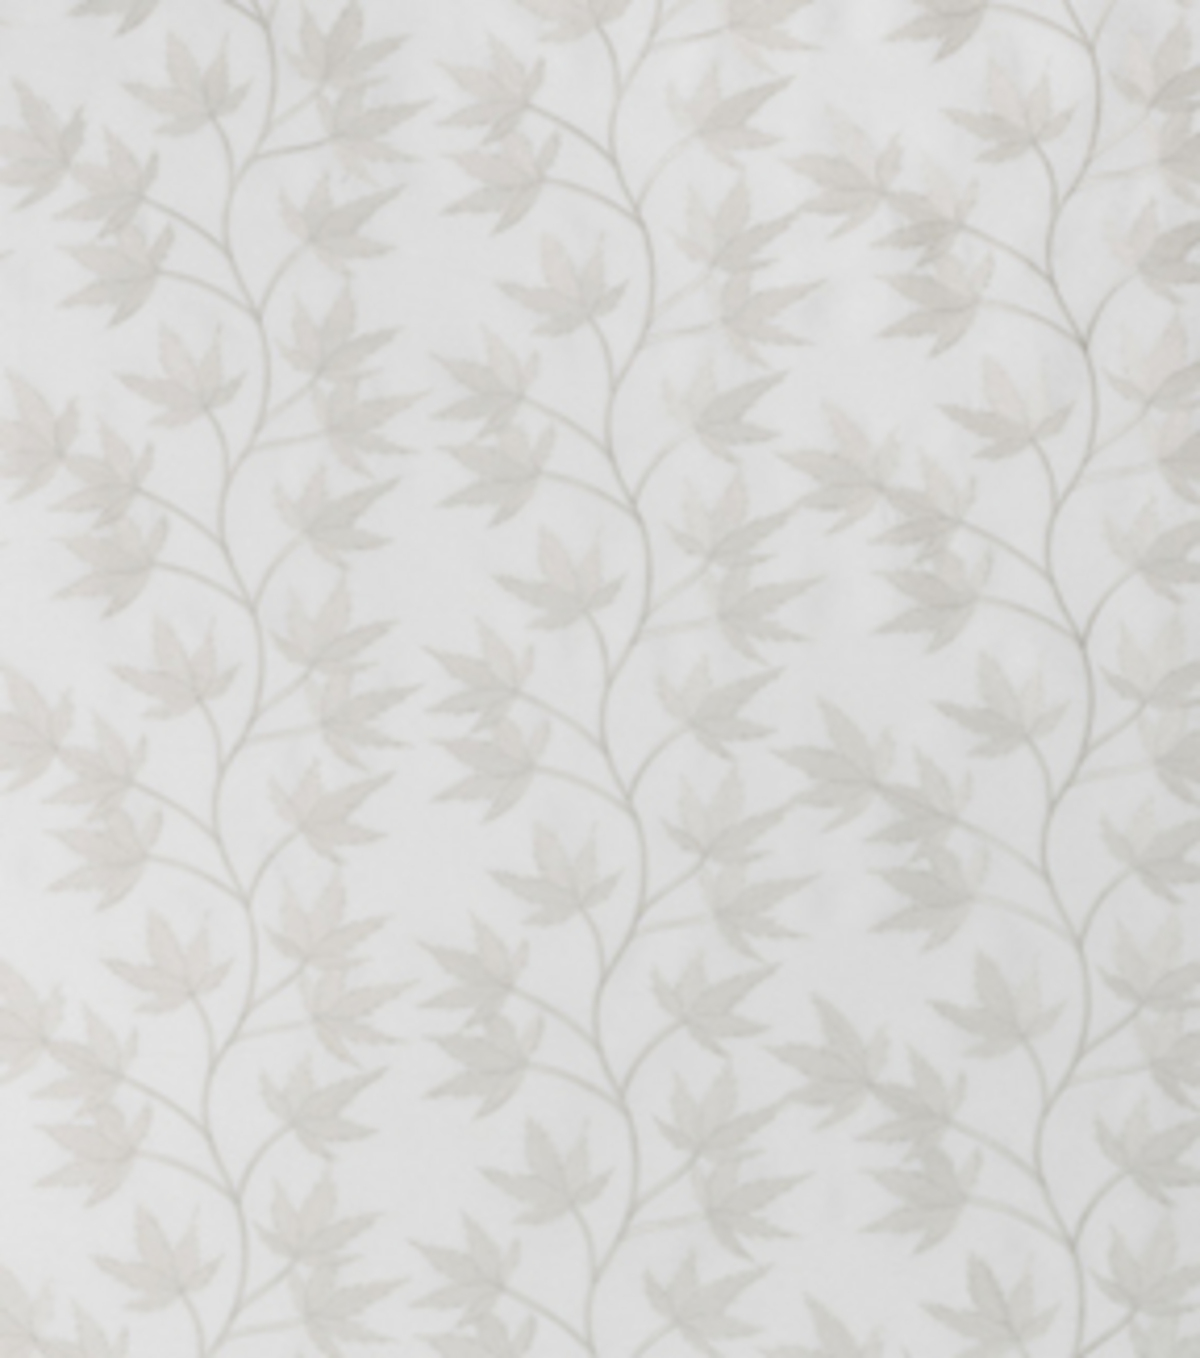 Home Decor 8\u0022x8\u0022 Fabric Swatch-Print Fabric SMC Designs Houston Marble